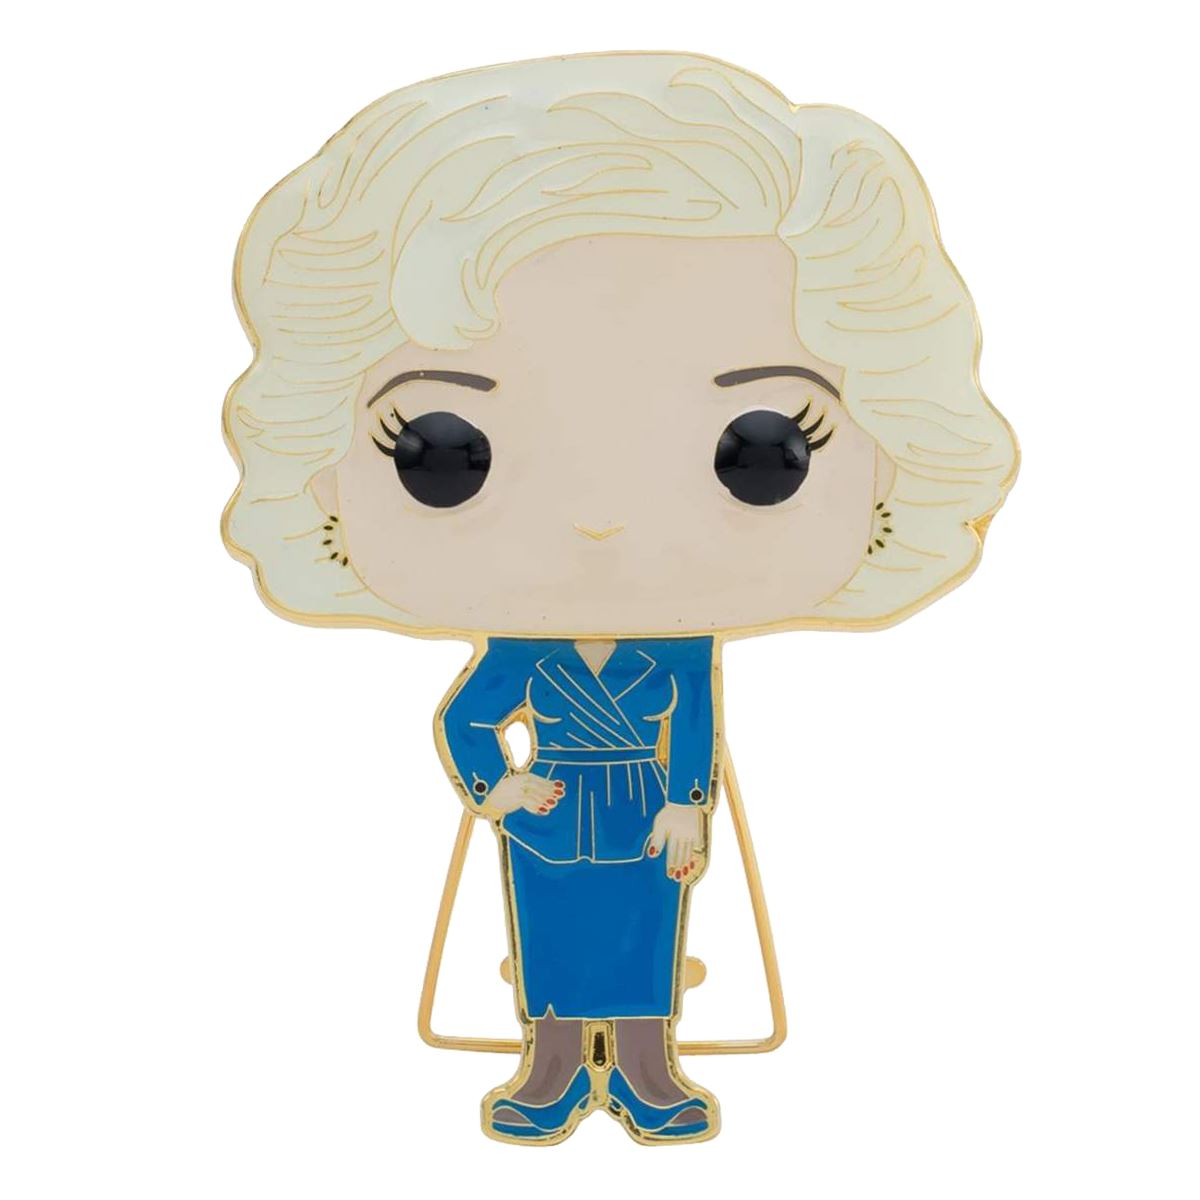 Rose Nylund The Golden Girls Funko POP! Pin [PRE-ORDER] Pop! Pin Funko